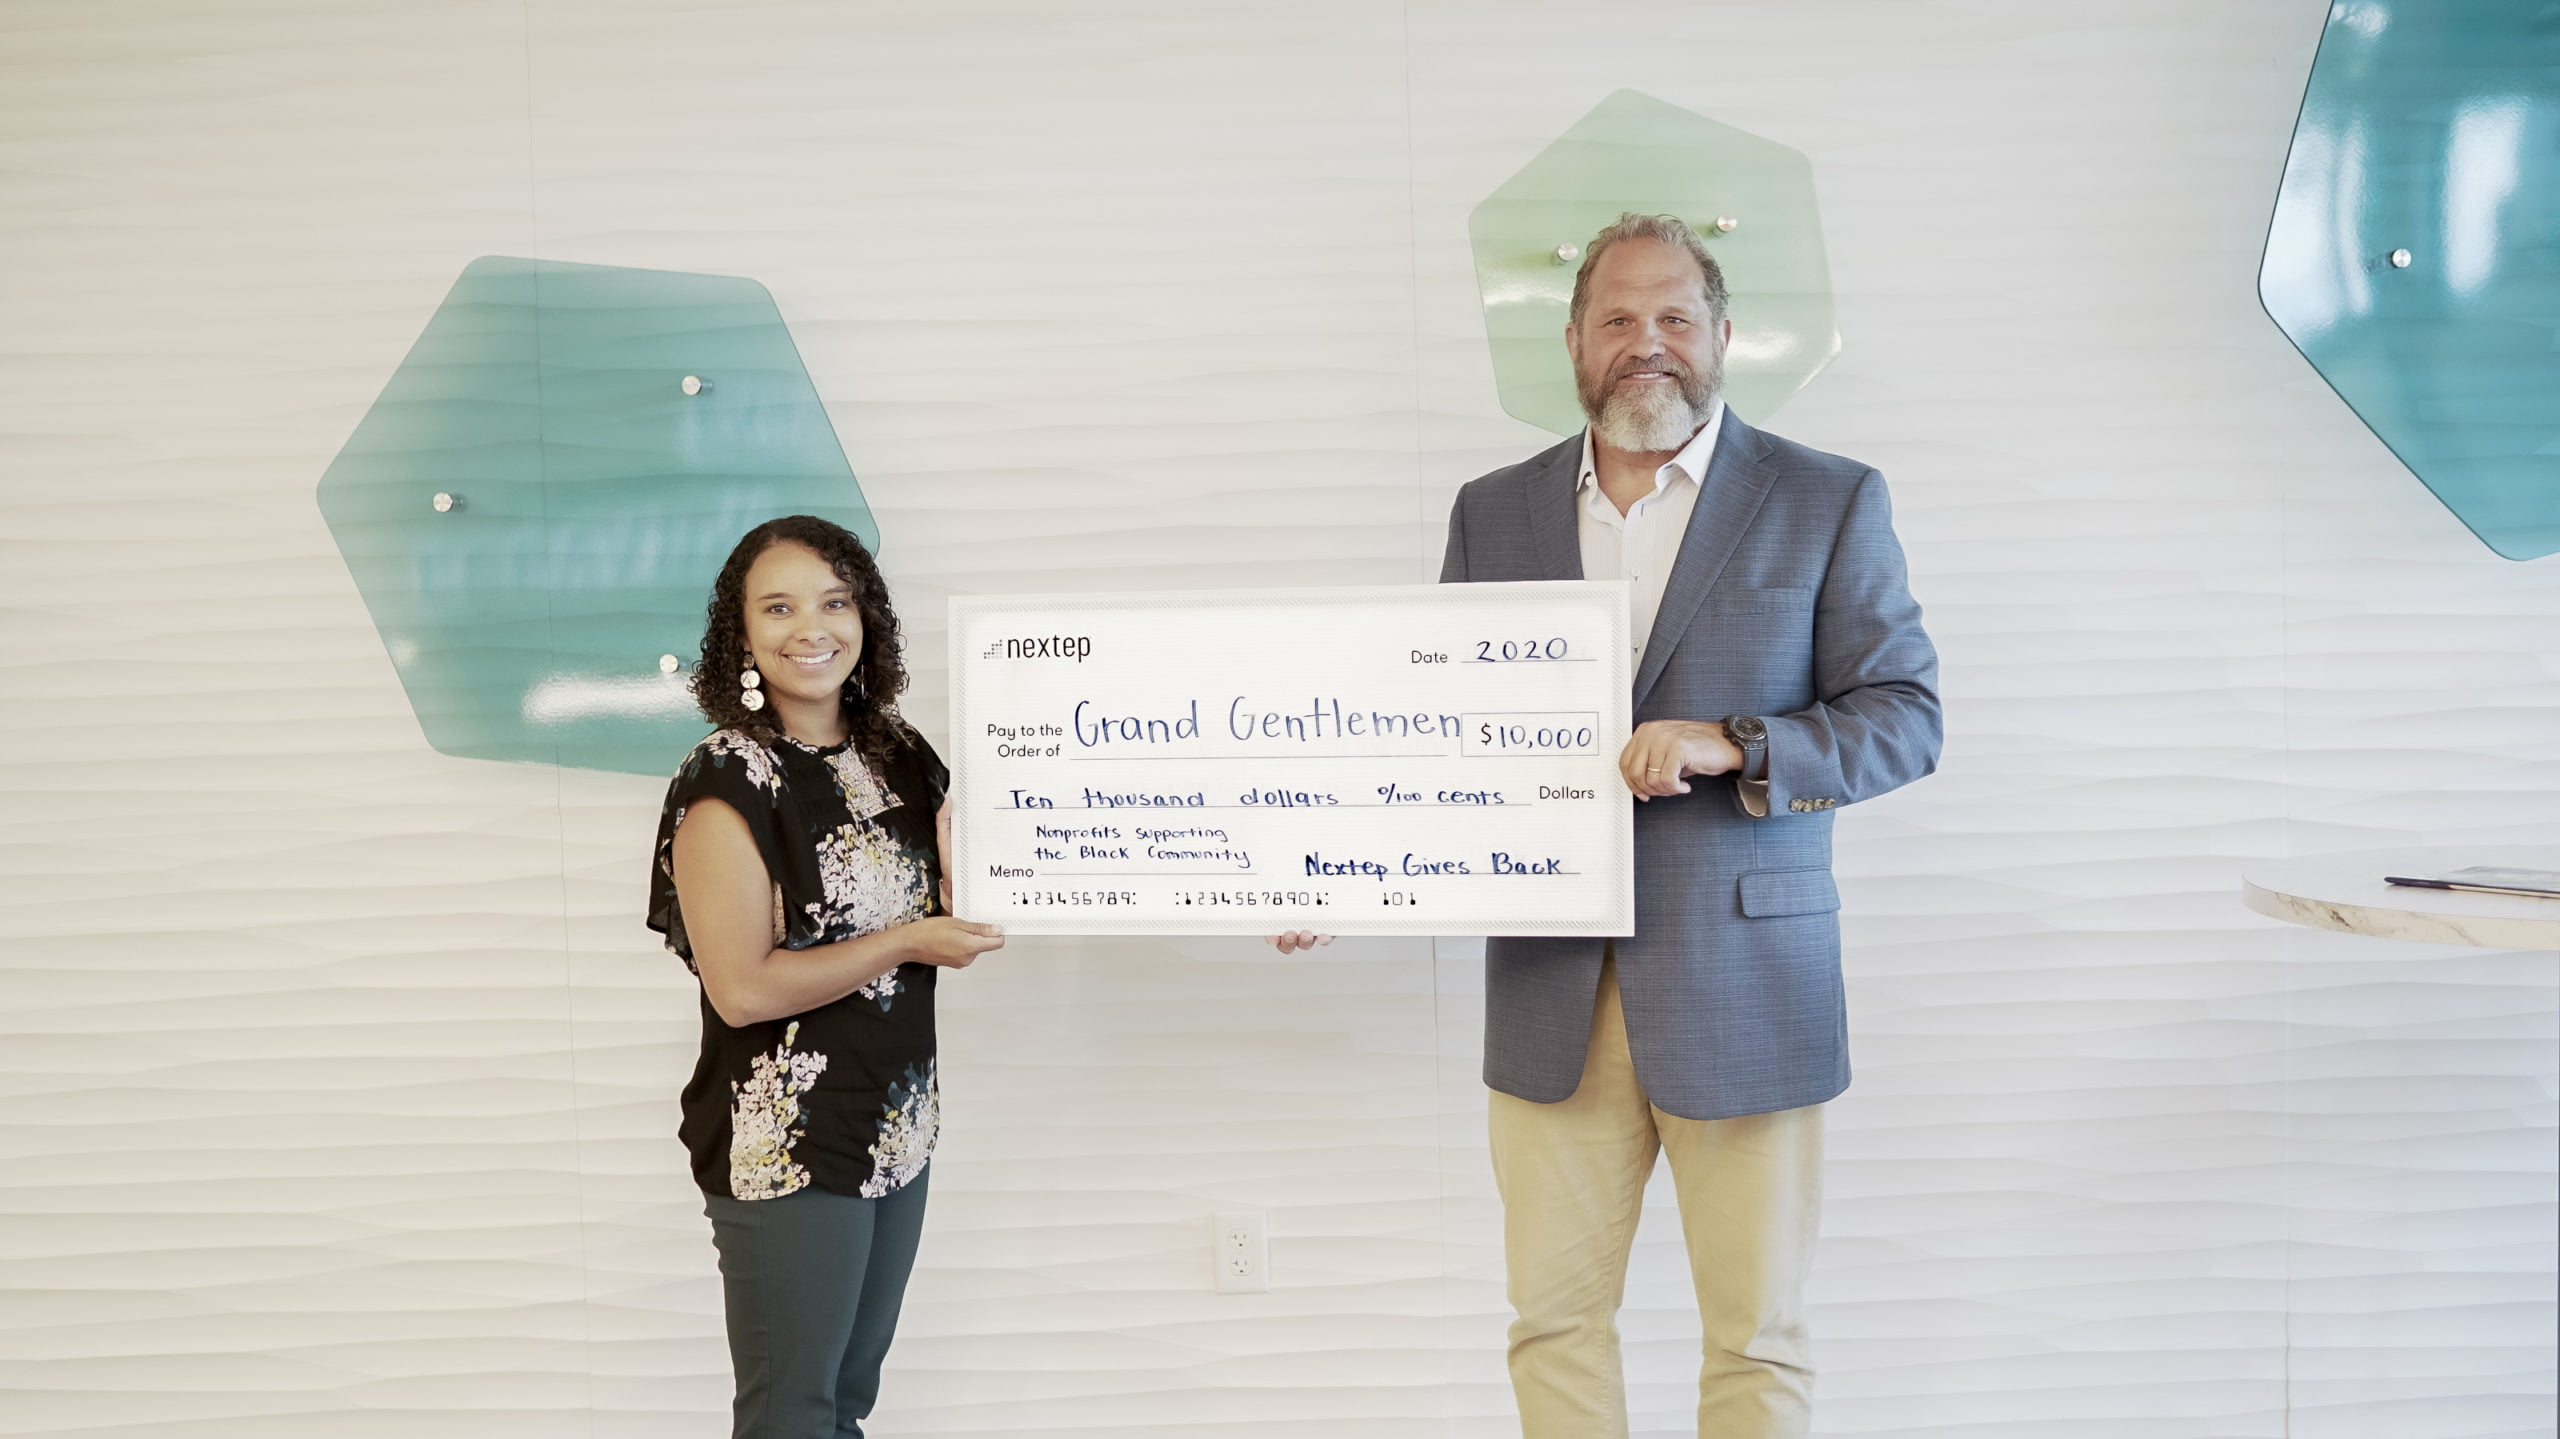 Nextep Donates $10,000 to Grand Gentlemen to Support the Oklahoma City Black Community